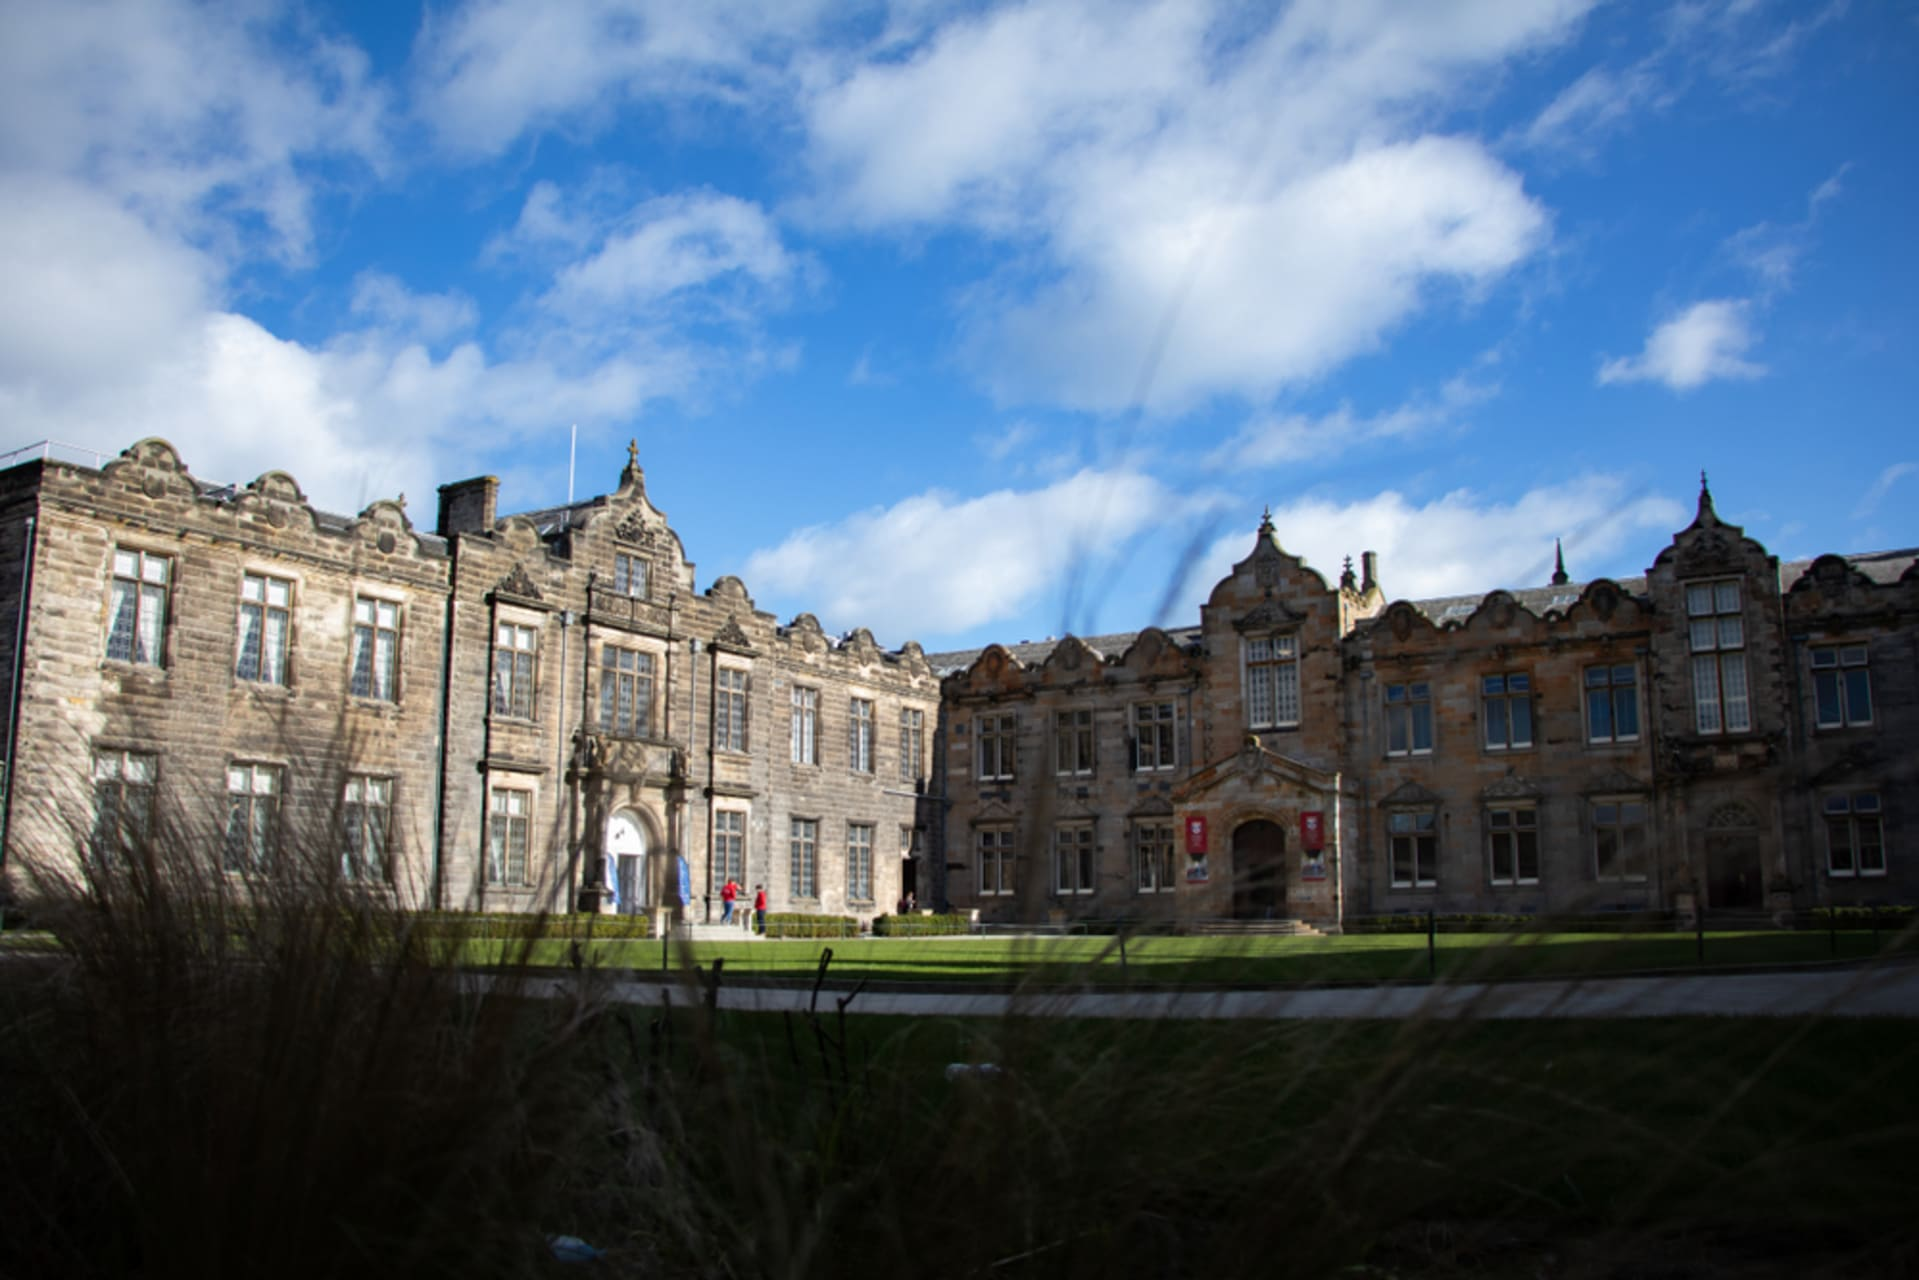 St Andrews - St Andrews Historic Town and University